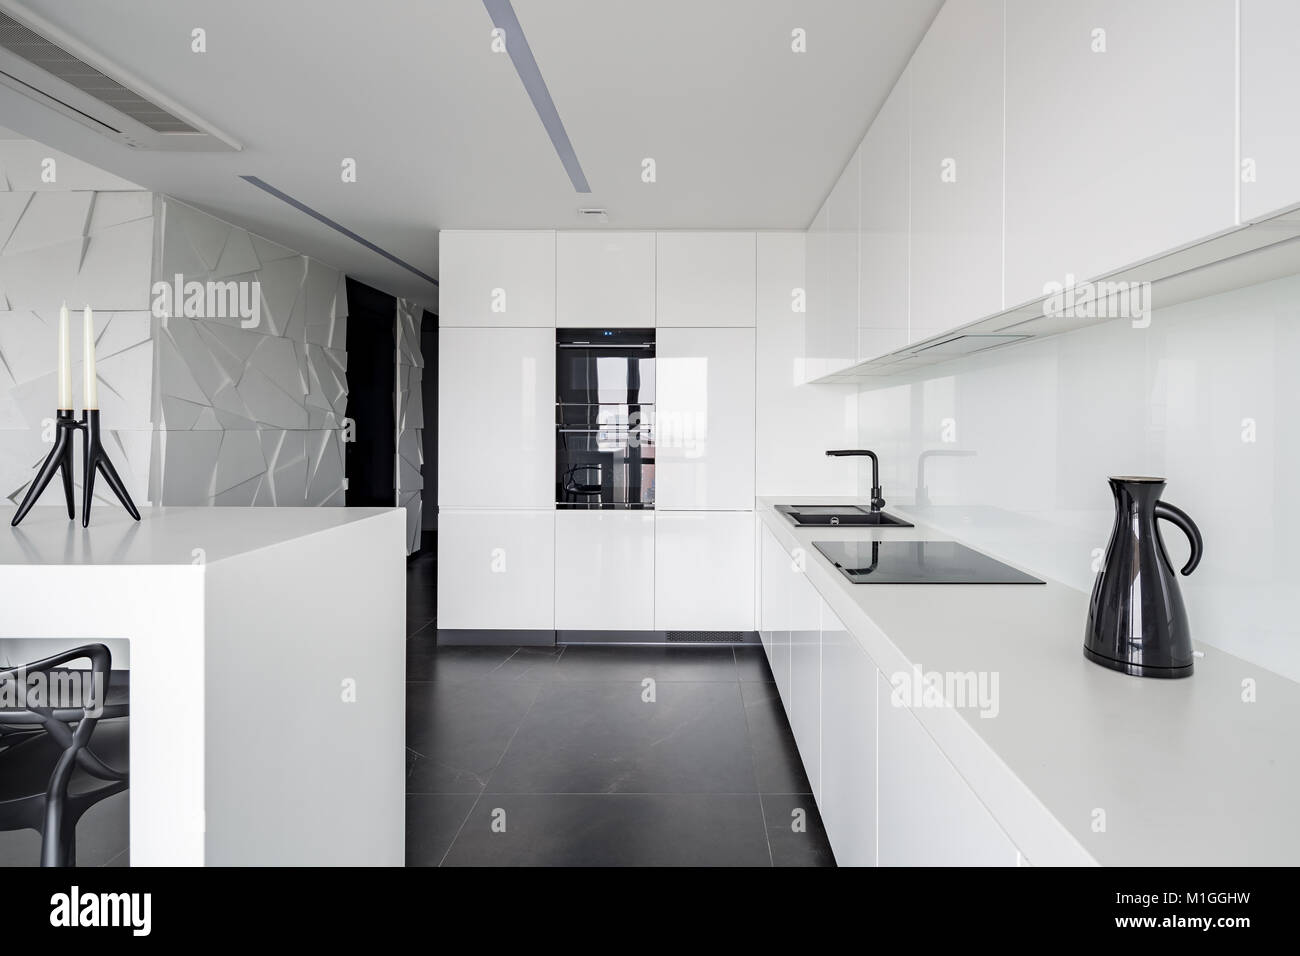 . High gloss white kitchen with modern equipment and black flooring